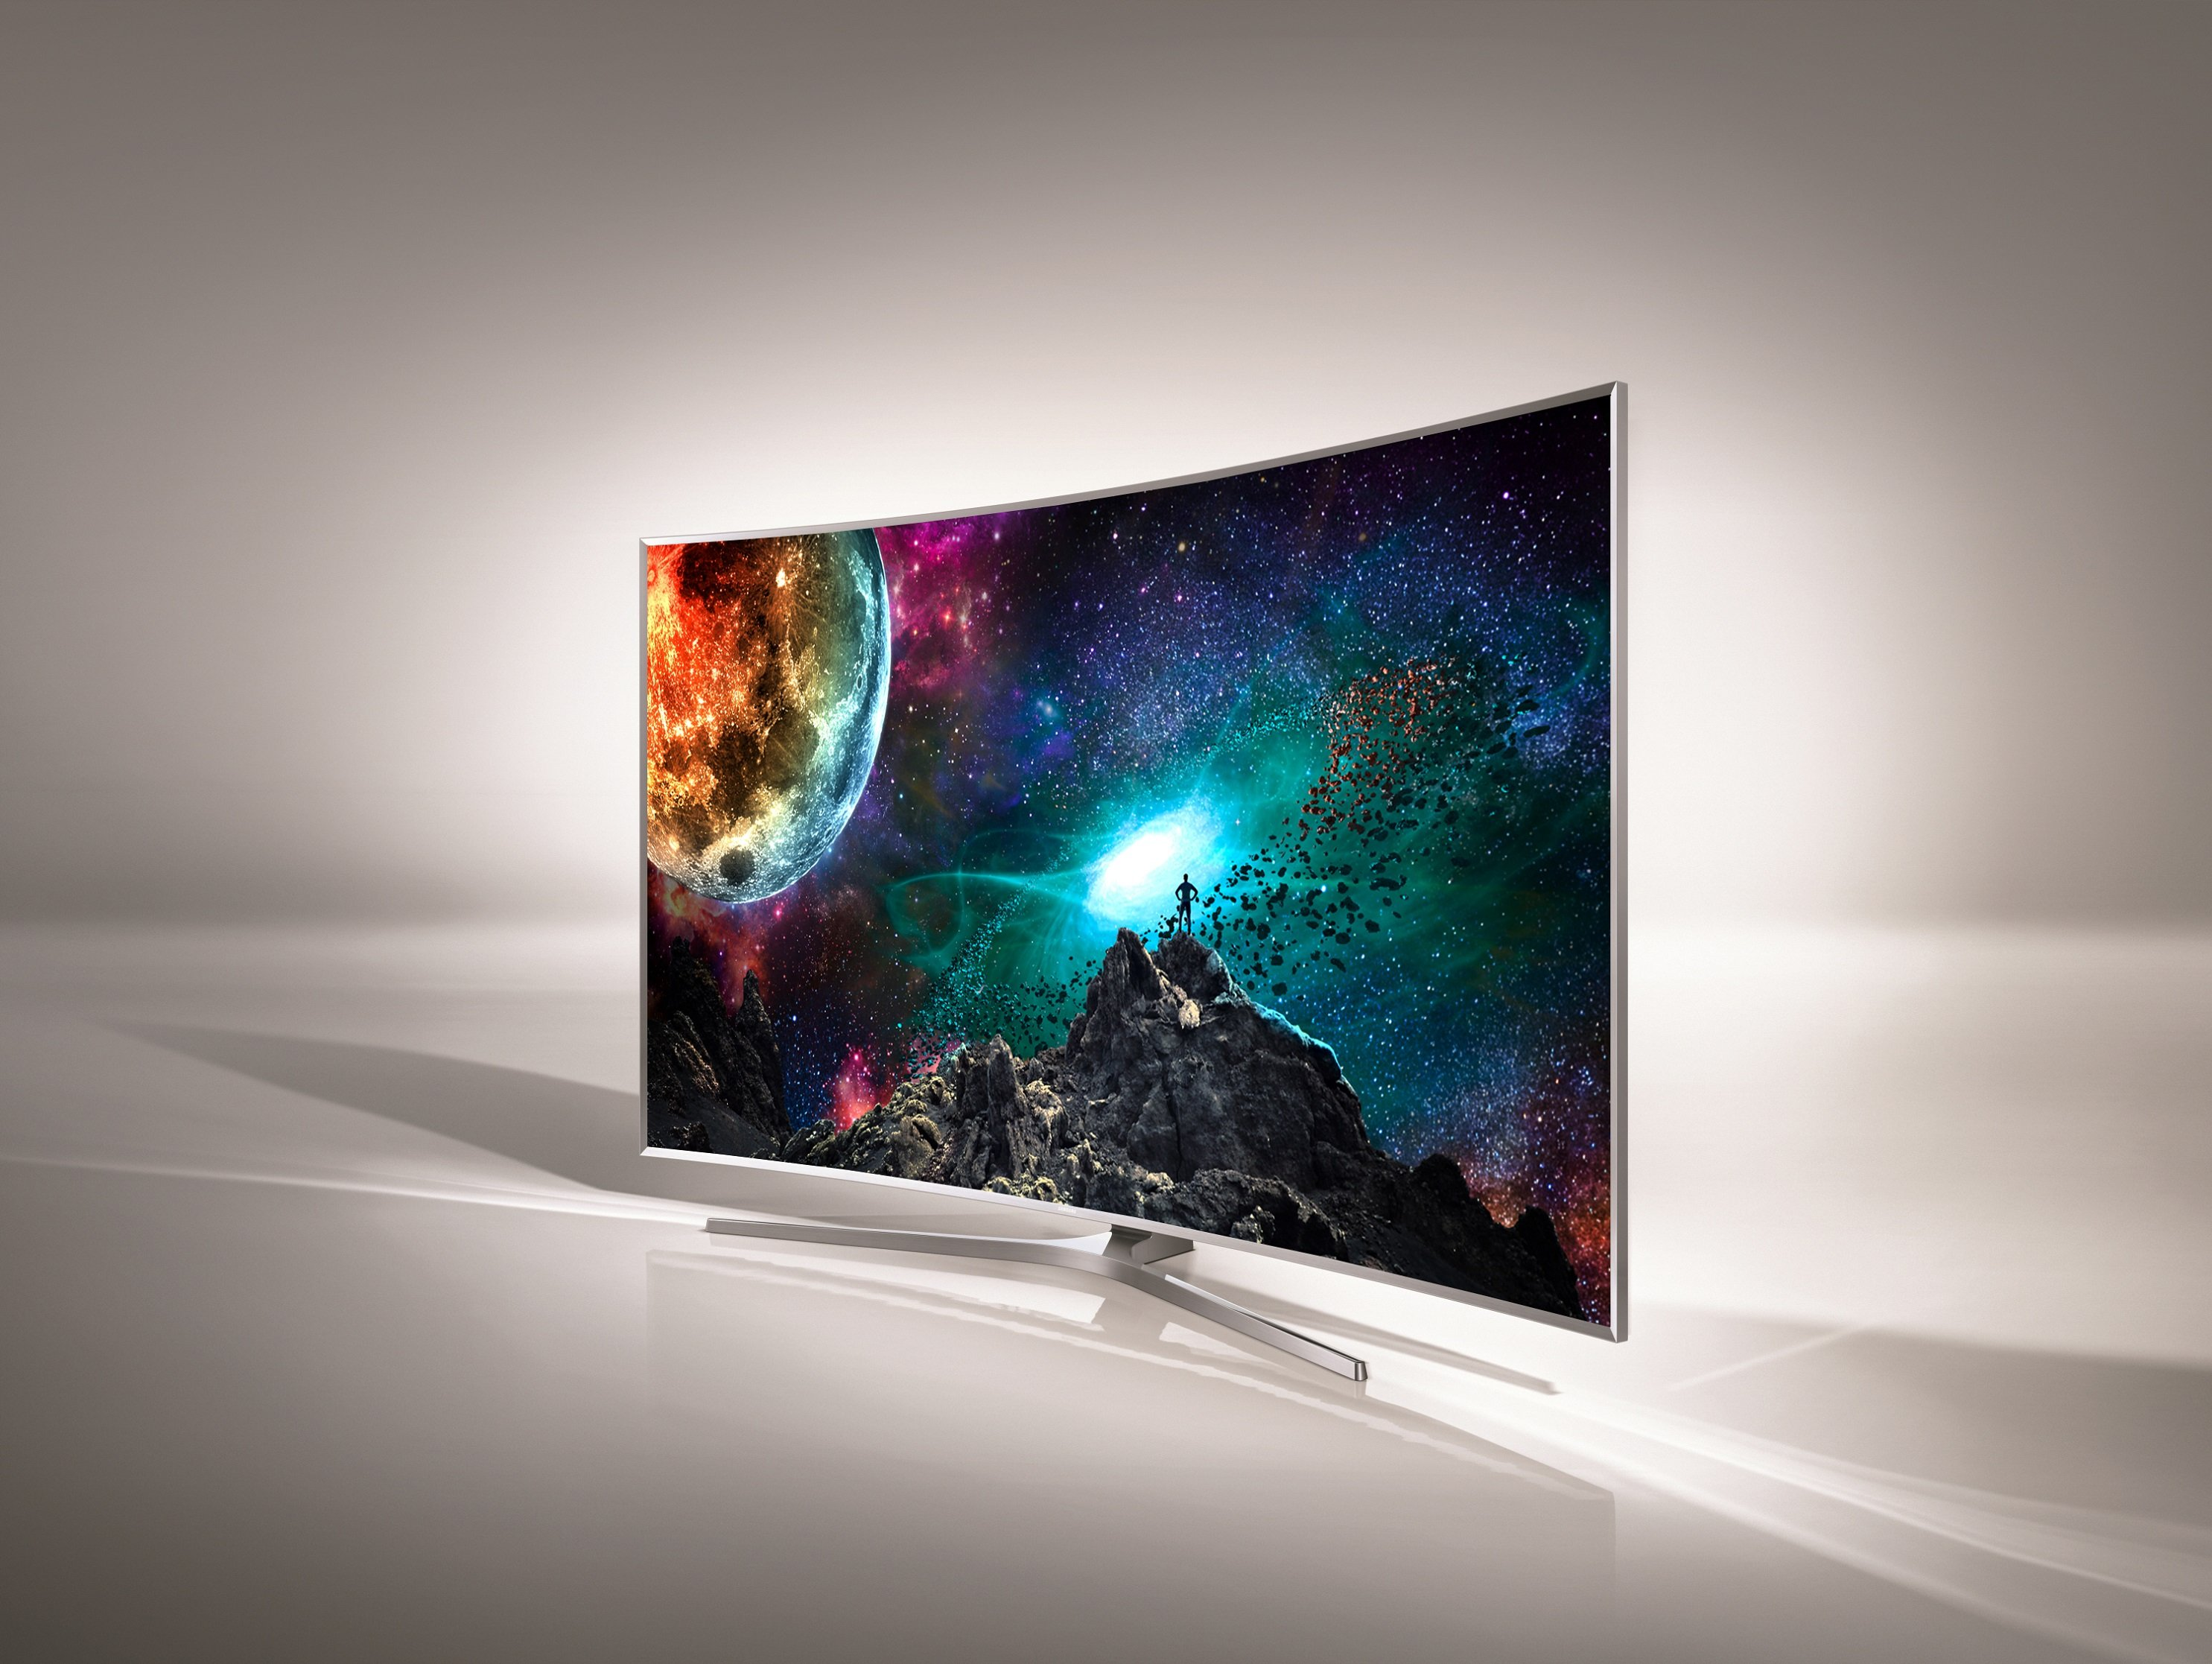 samsung announces new series of suhd tvs world s first tvs with tizen os sammobile. Black Bedroom Furniture Sets. Home Design Ideas